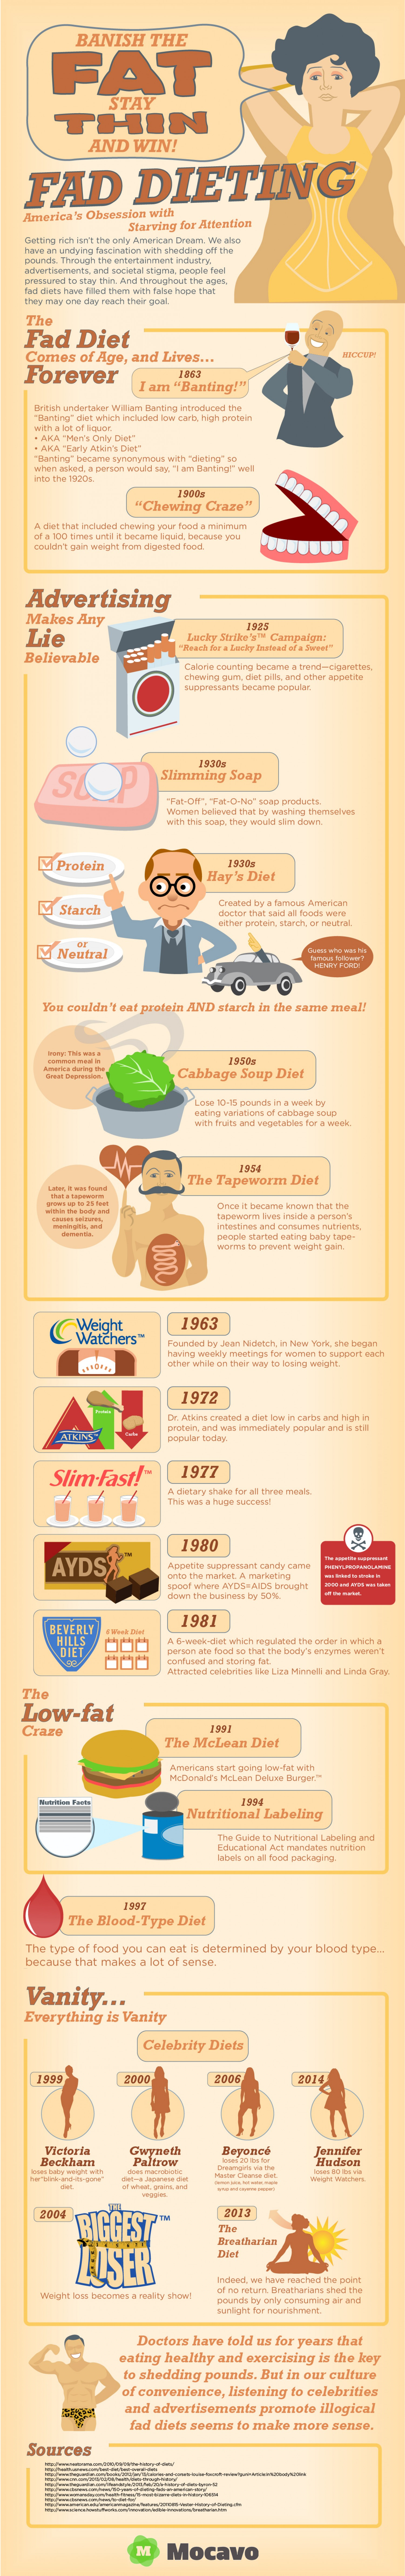 Dieting Infographic